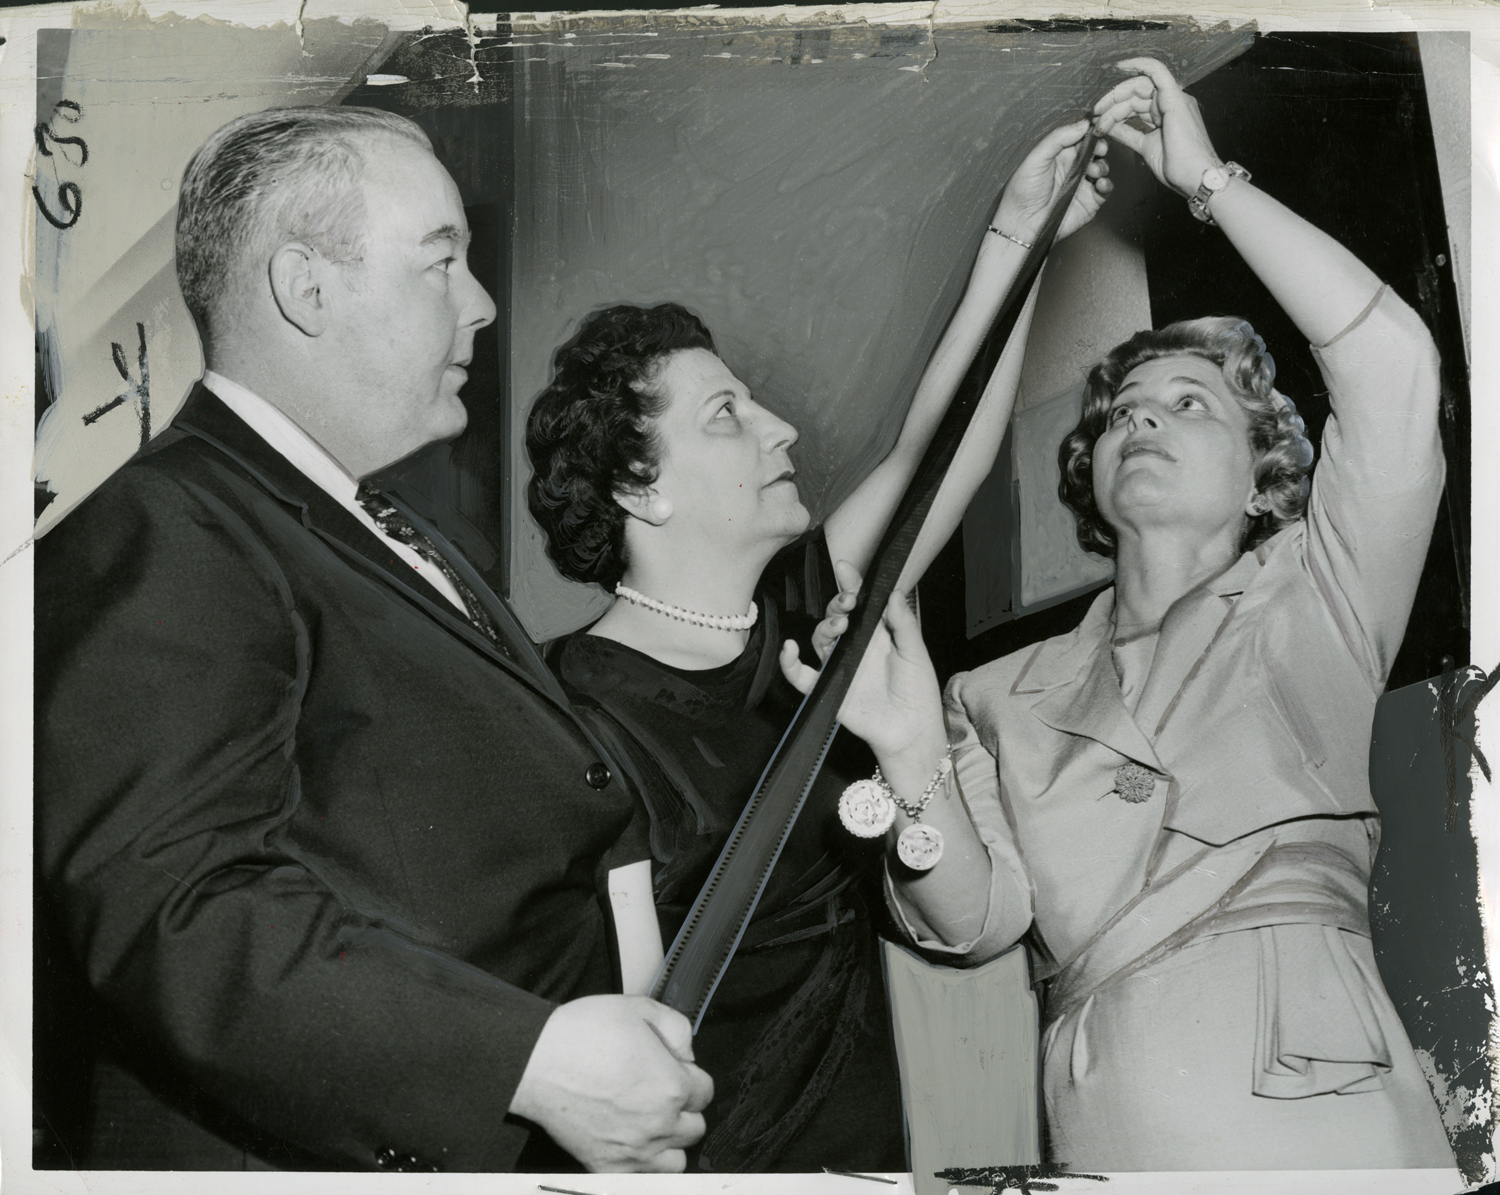 Newly Appointed Censor Board, May 1961: Norman Mason, Mary Avara, and Rosalyn Shecter. William LaFoore, 1961.